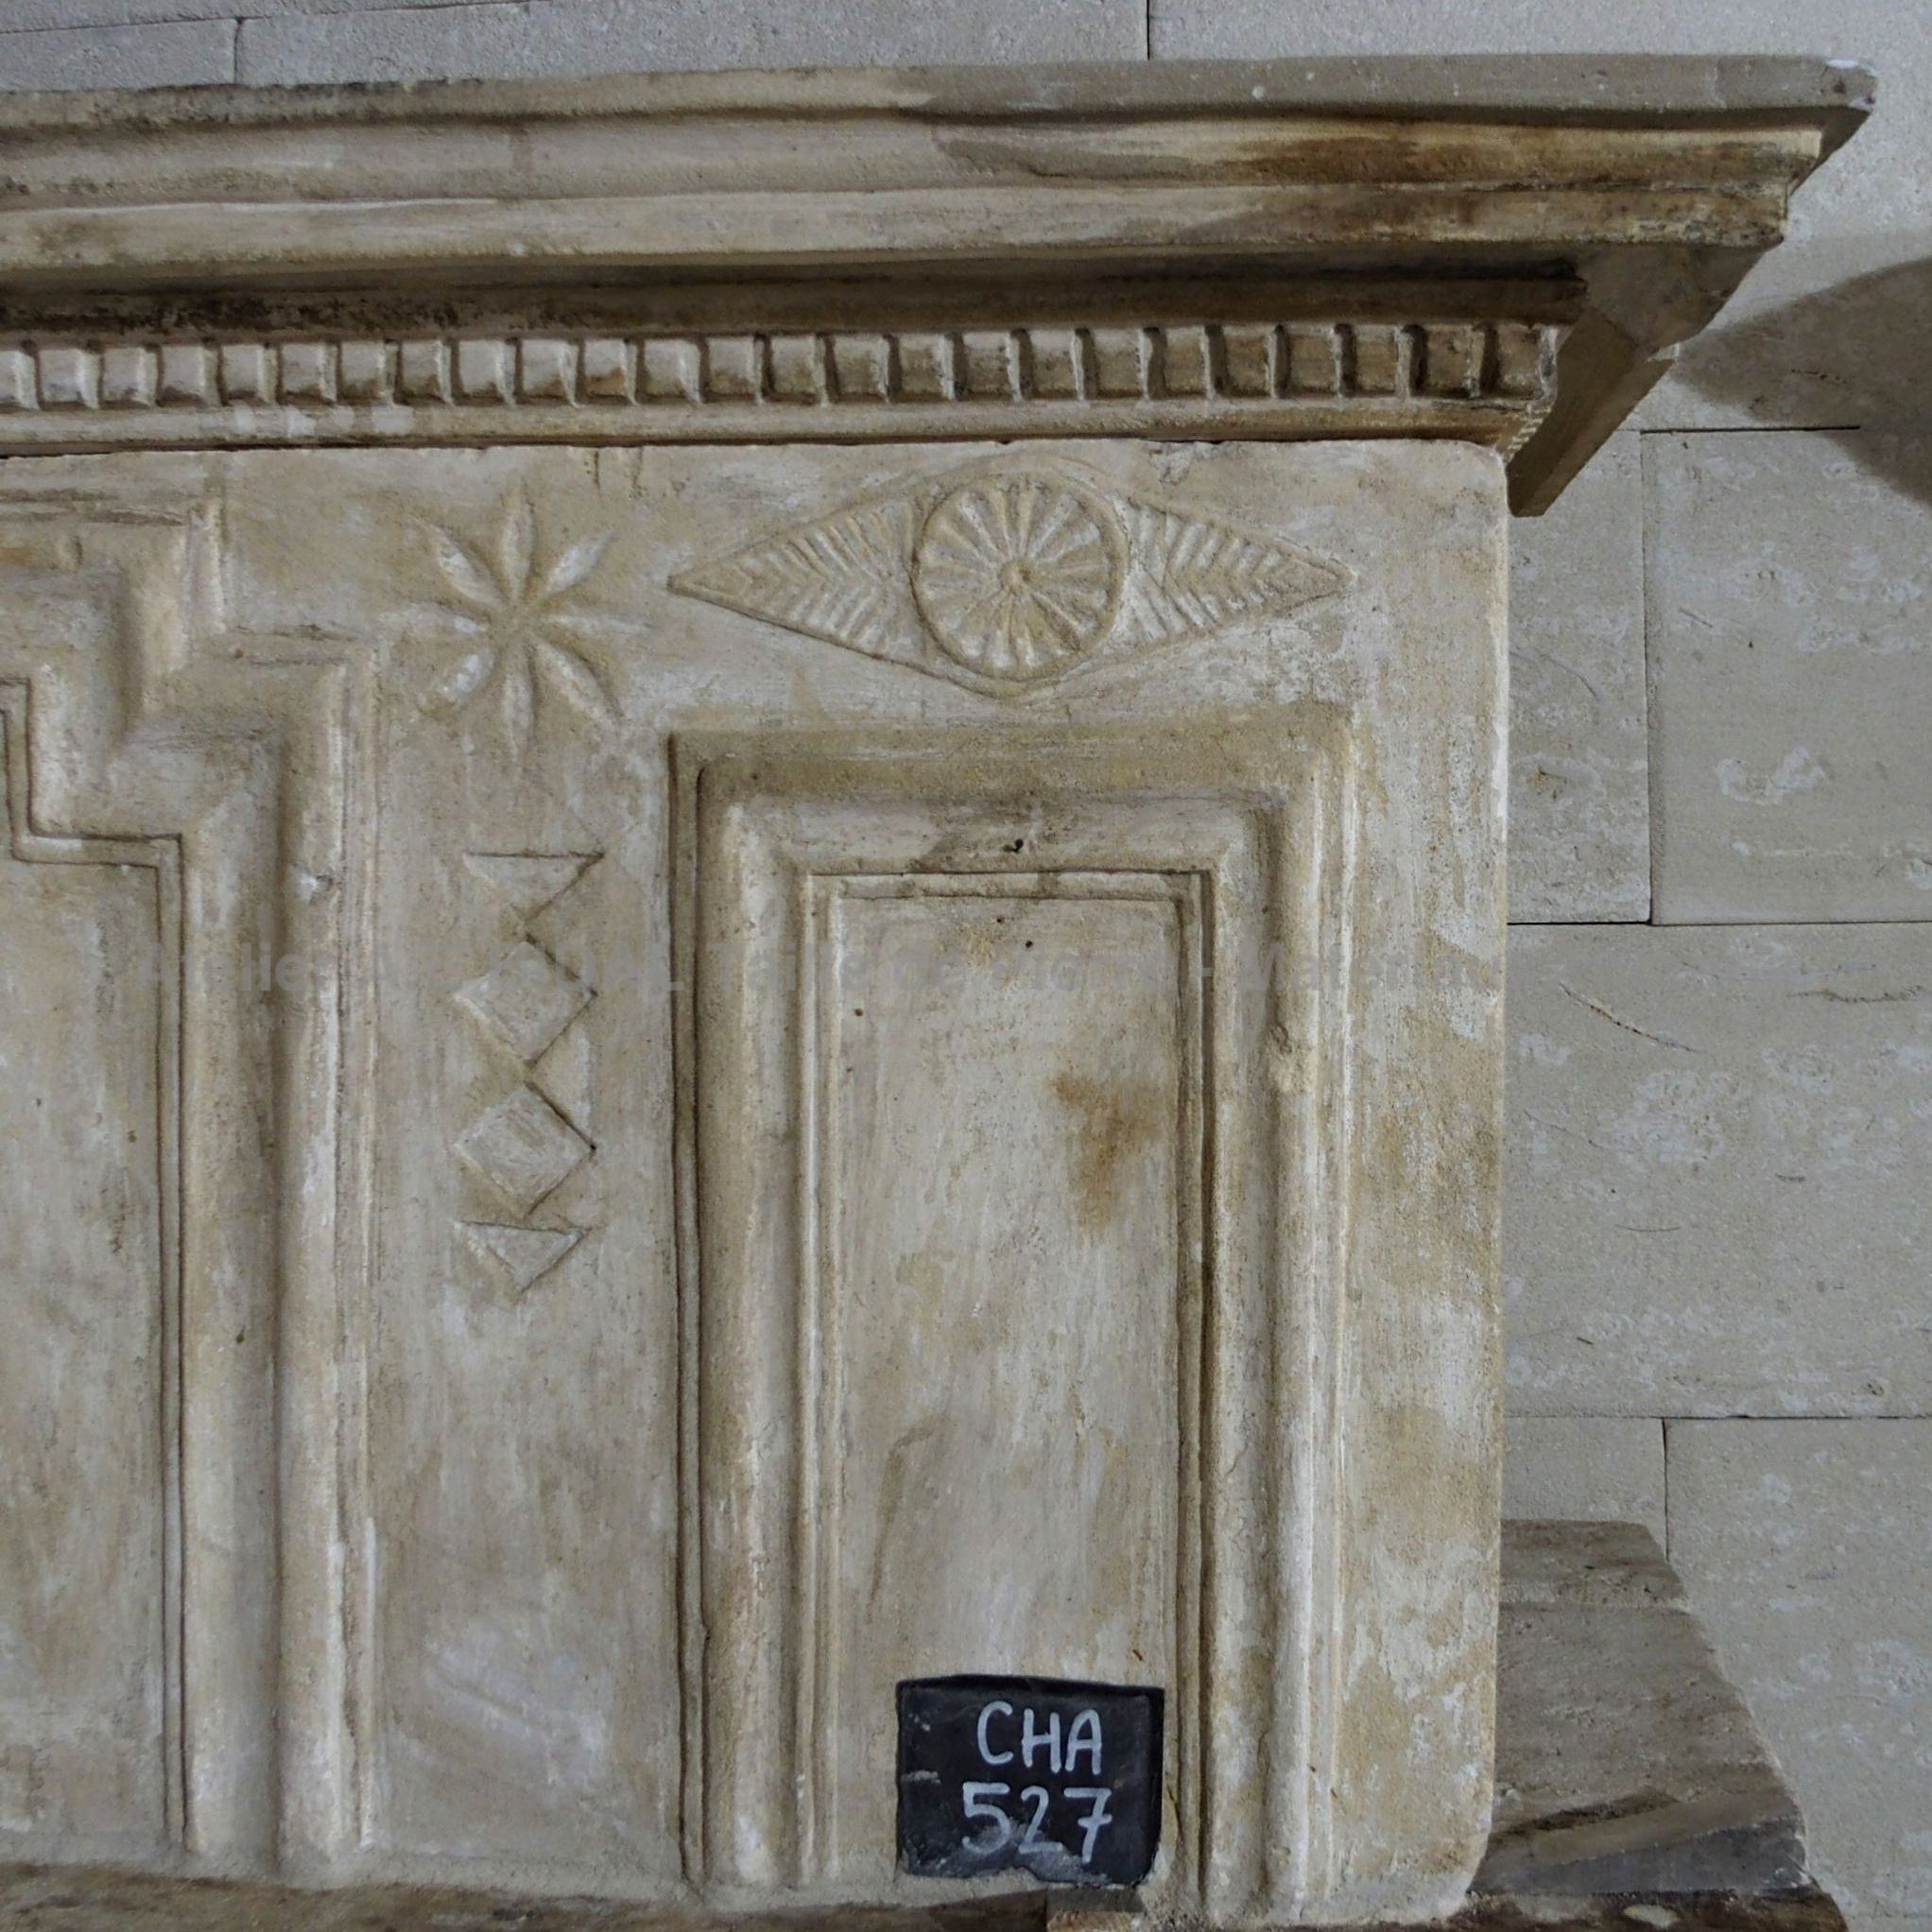 fireplace with overmantle - a Louis 16 fireplace which partially resembles the style of a Louis 13 fireplace.